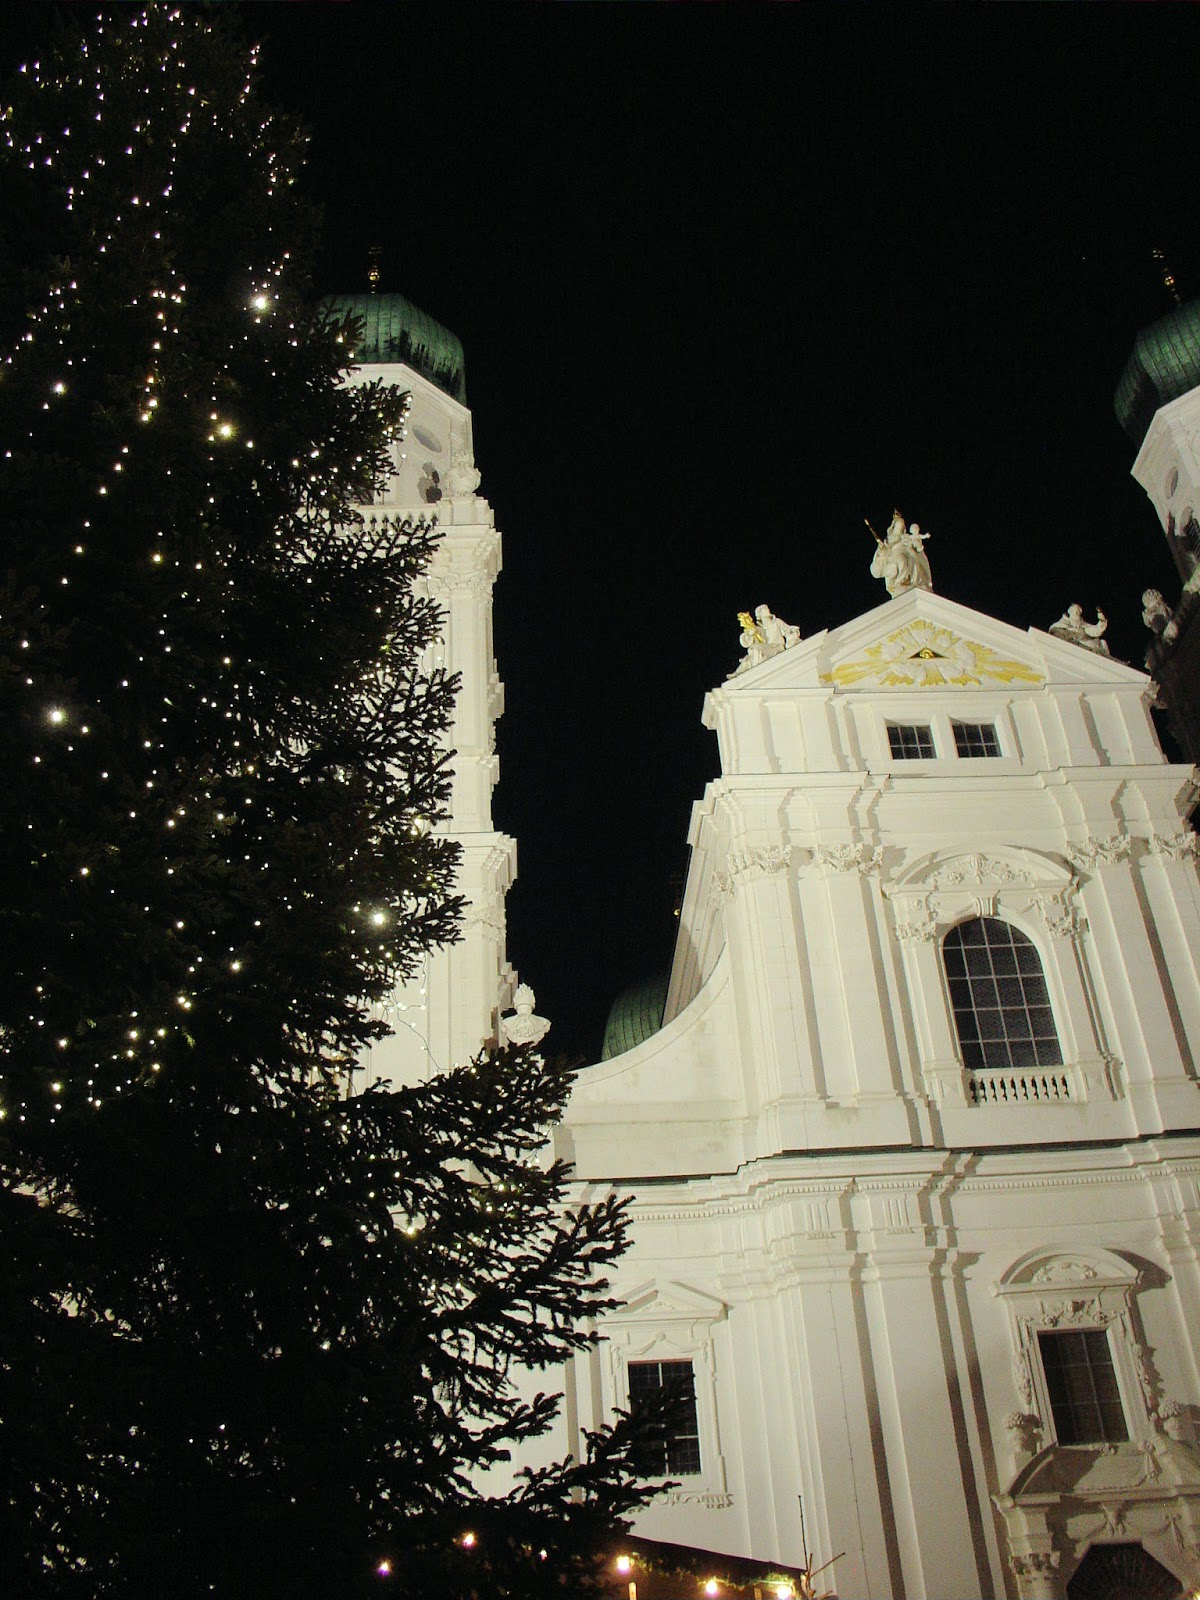 Saint Stephan's Cathedral in Passau provided a striking contract of the white cathedral against the velvety night.